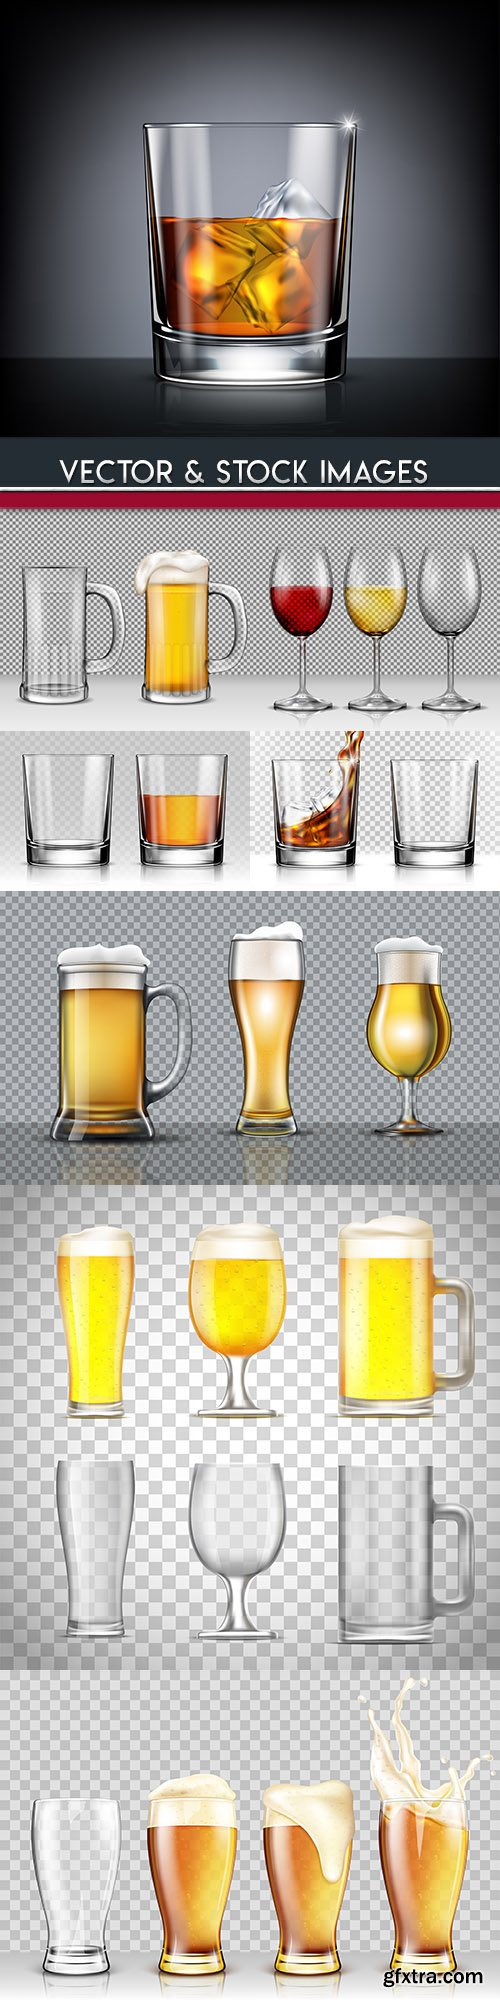 Glass glass for whisky beer and alcoholic beverages